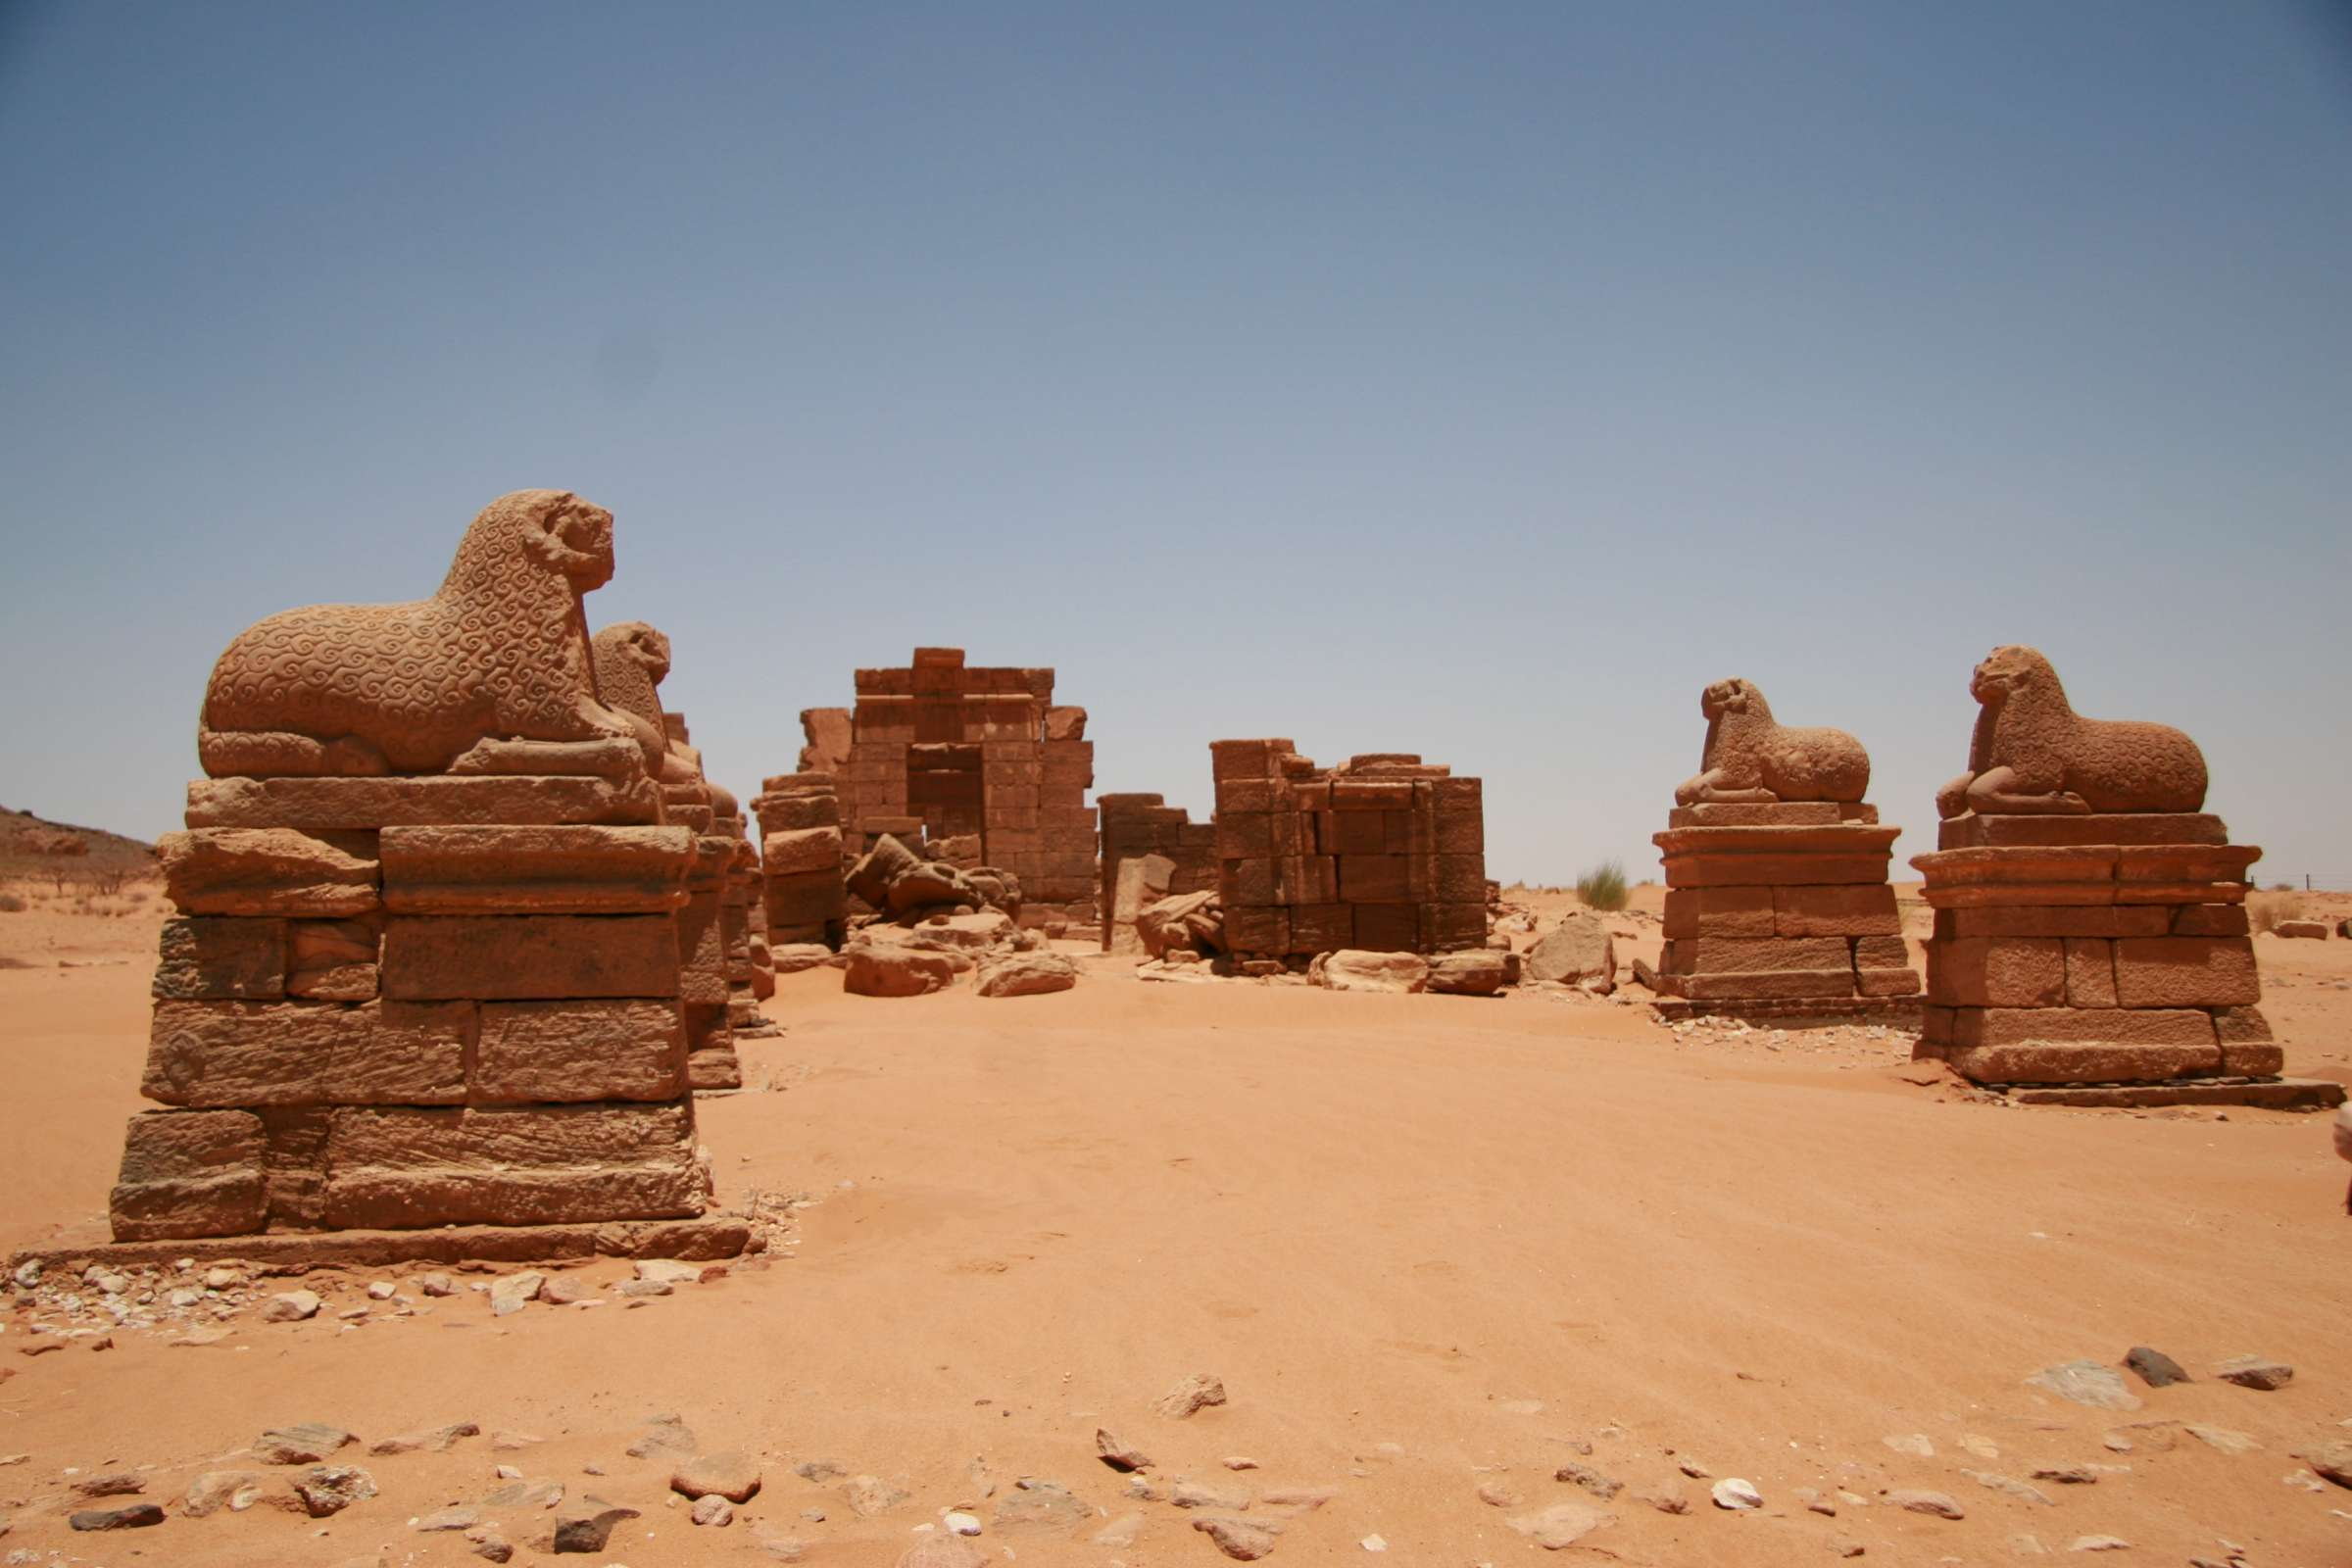 ancient sudan nubia essay The mystery of the miniature pyramids of sudan the egyptians built pyramids as tombs for hundreds of years ancient nubia.